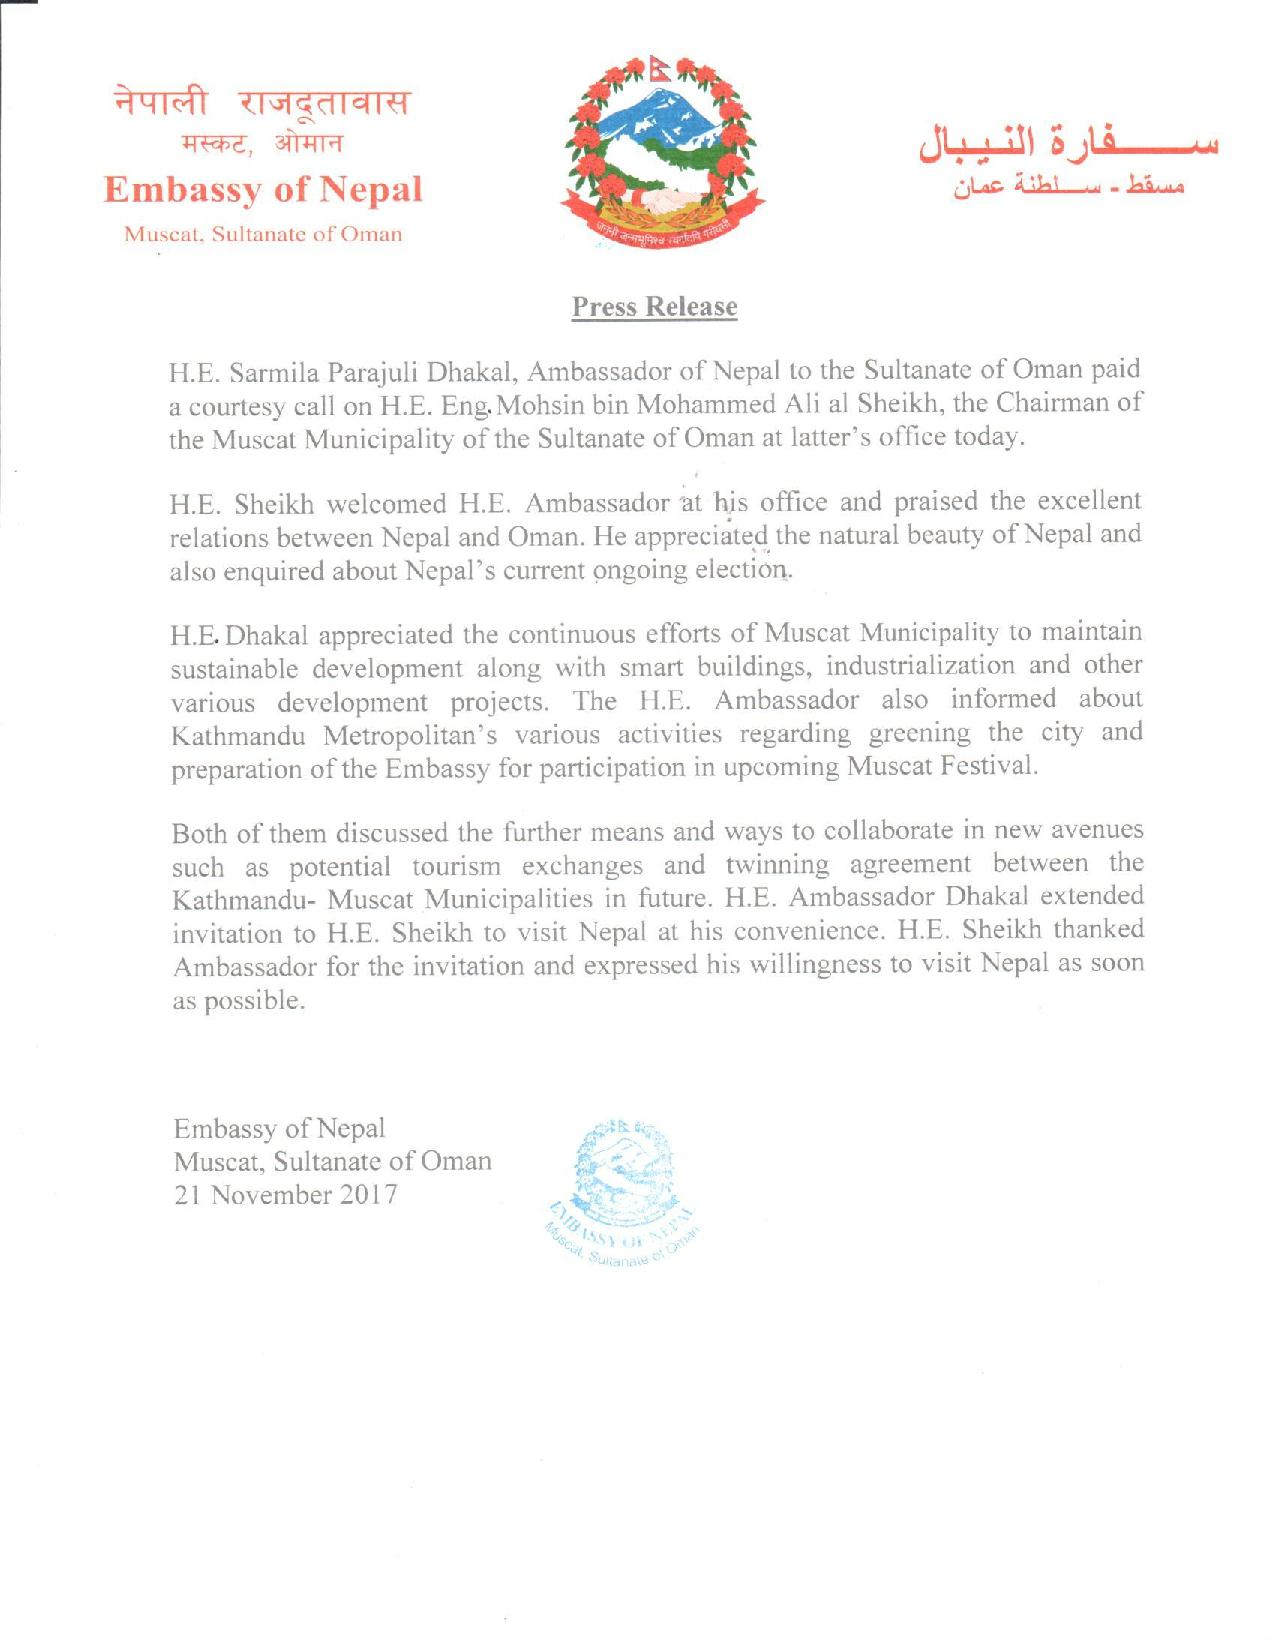 Press release issued by embassy of nepal muscat regarding a press release issued by embassy of nepal muscat regarding a courtesy call altavistaventures Choice Image